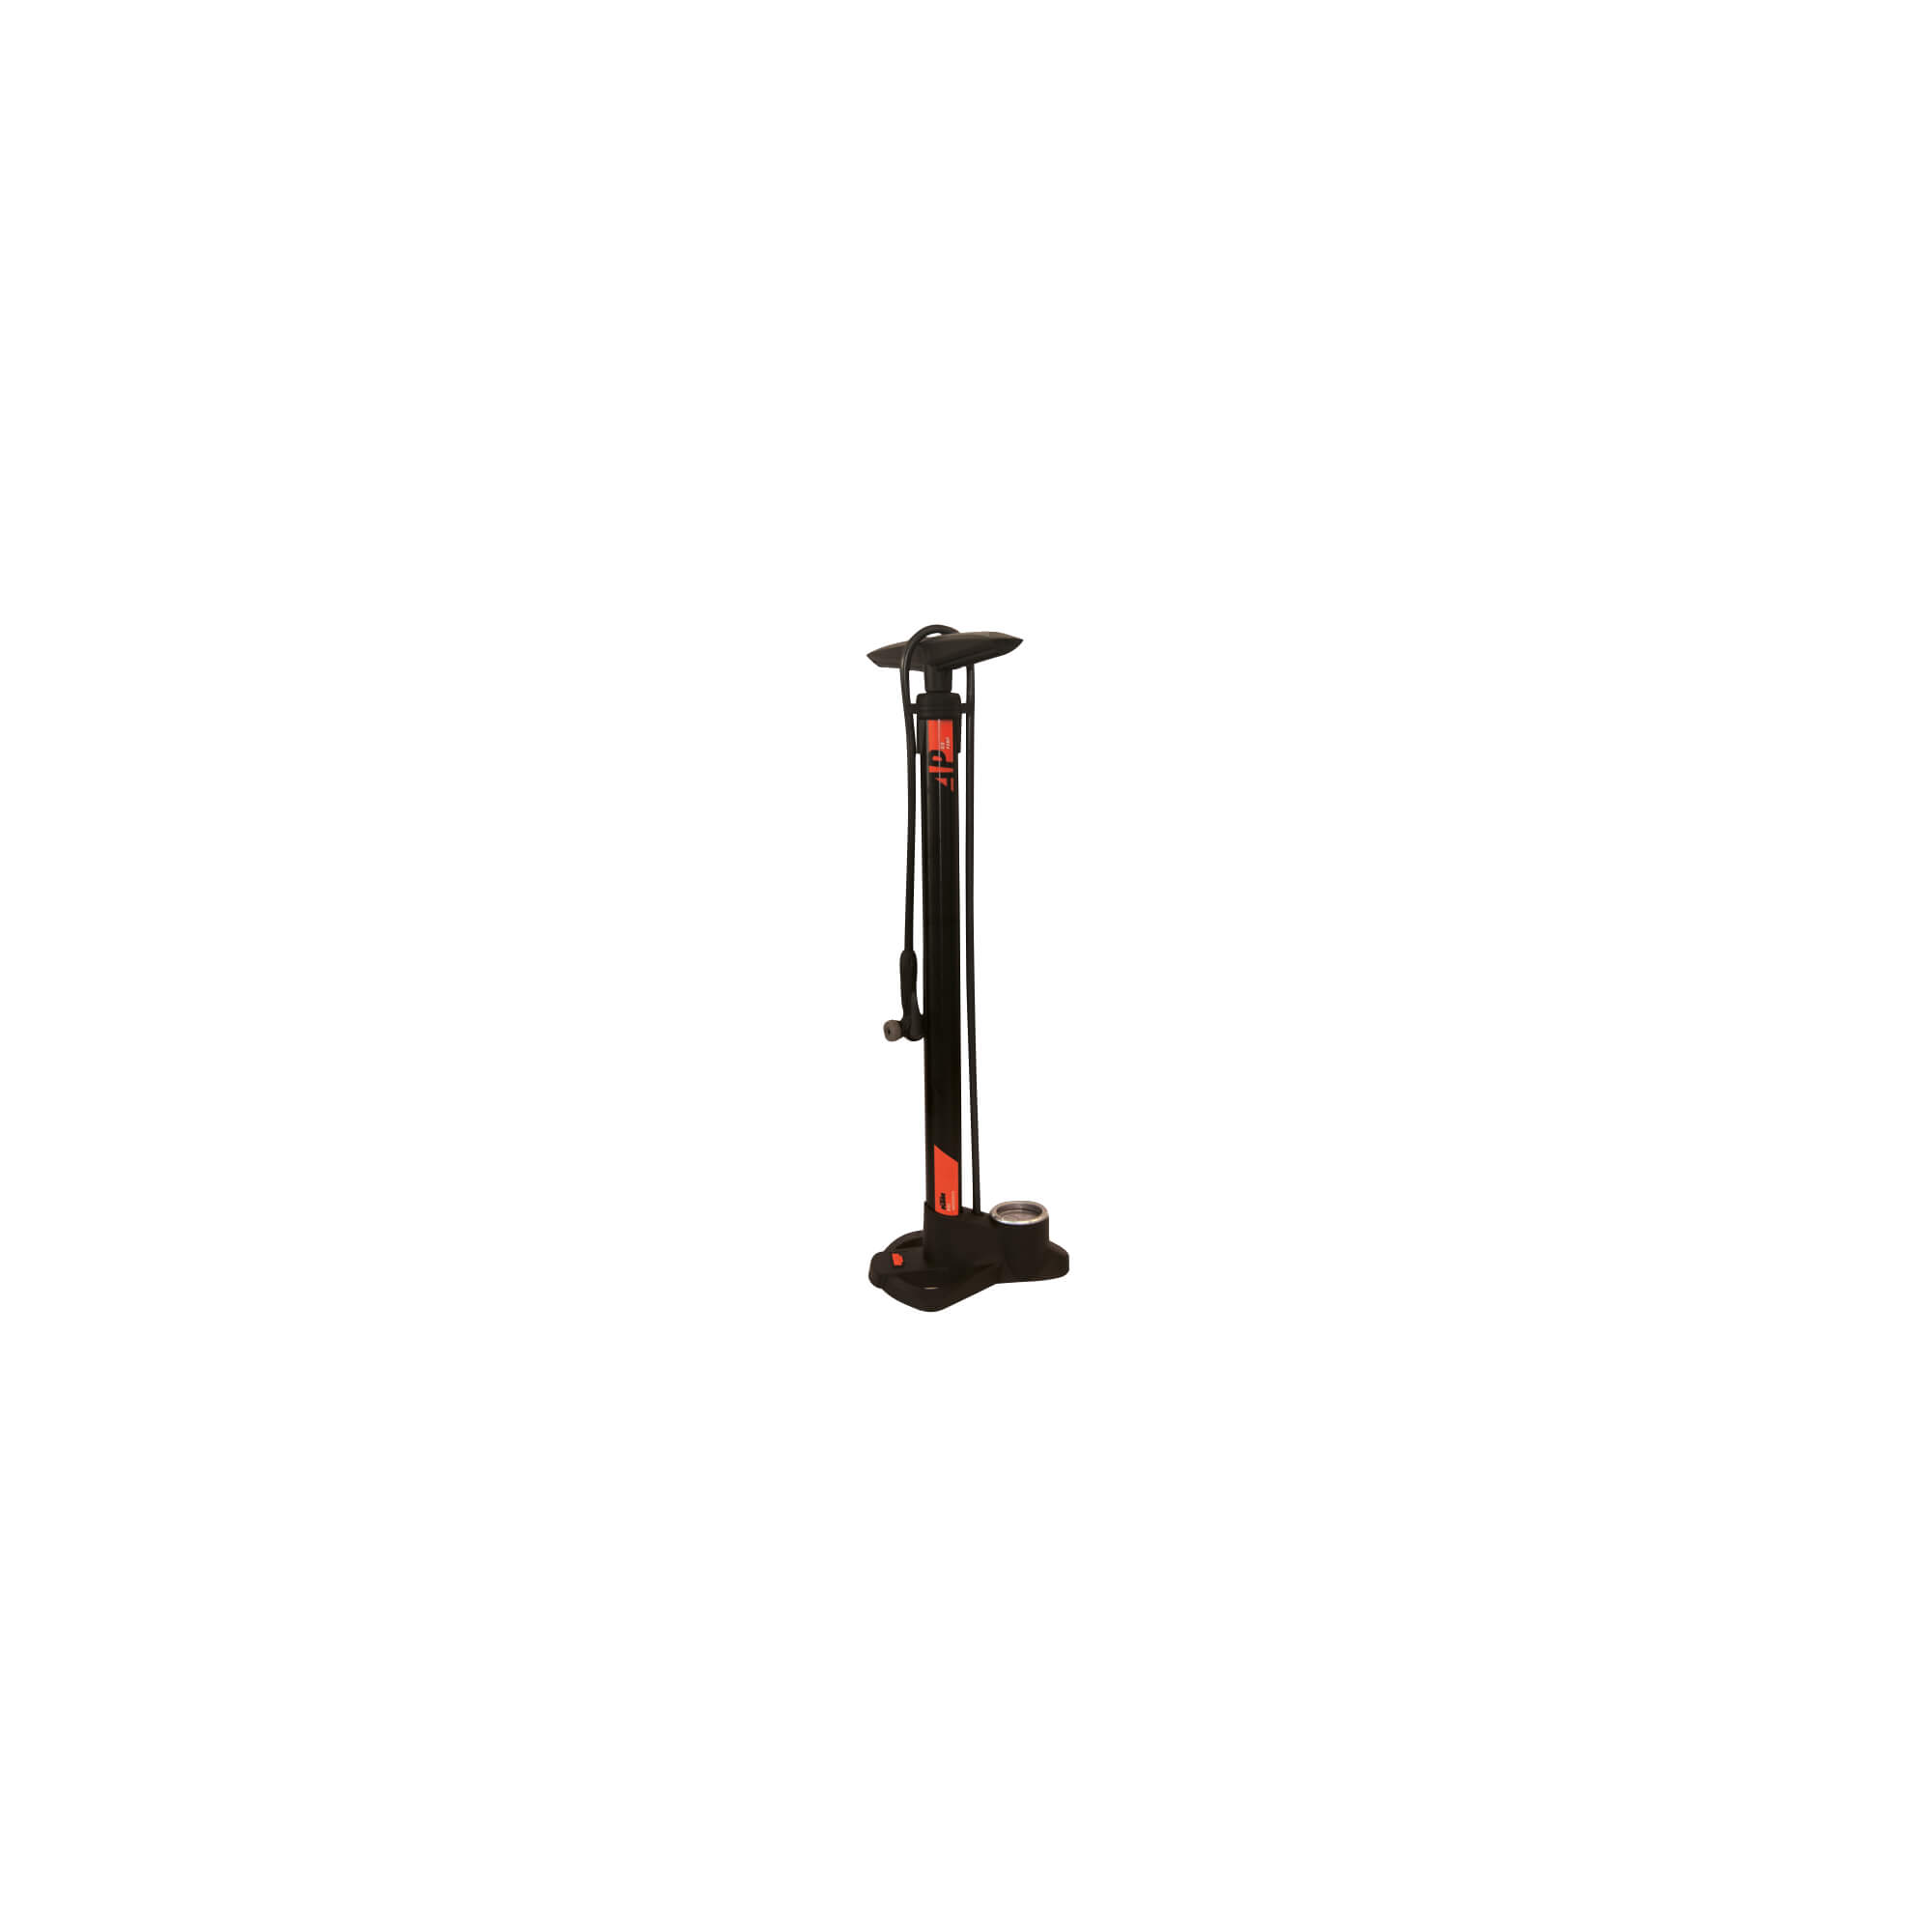 Floor Pump KTM poza